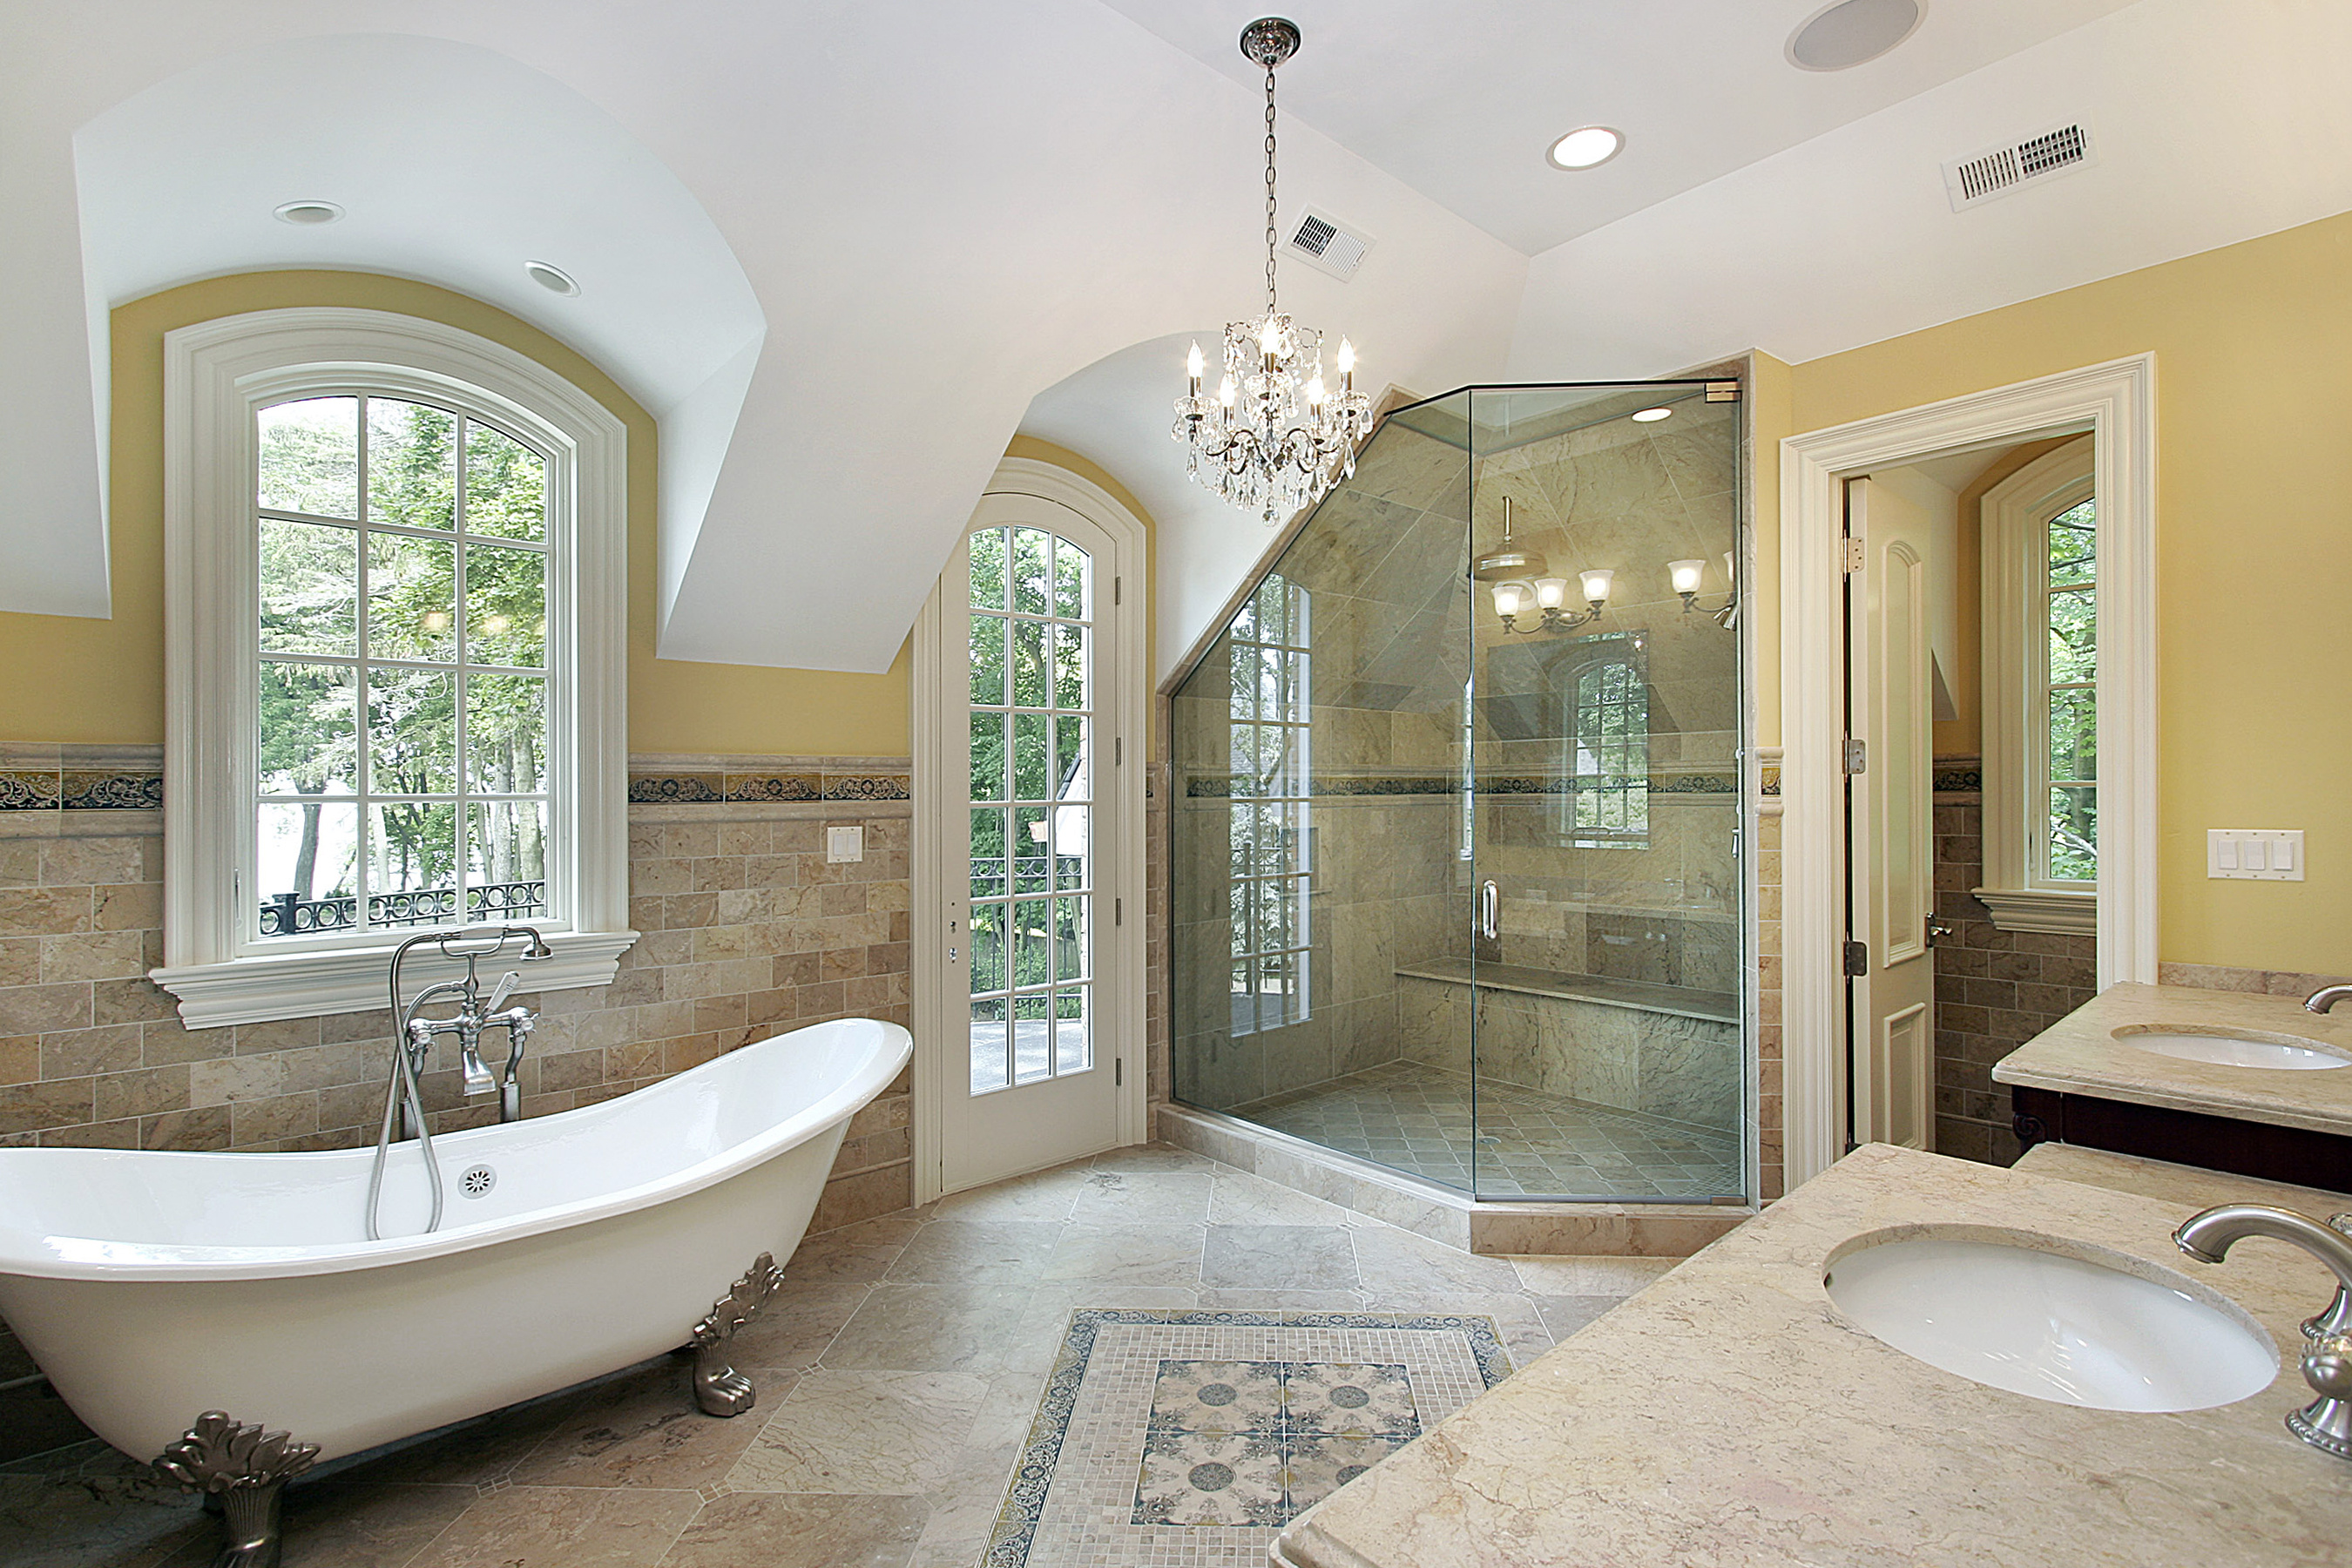 bradley construction offers award winning bathroom remodeling in chevy chase md since 1978 - Remodeling Master Bathroom